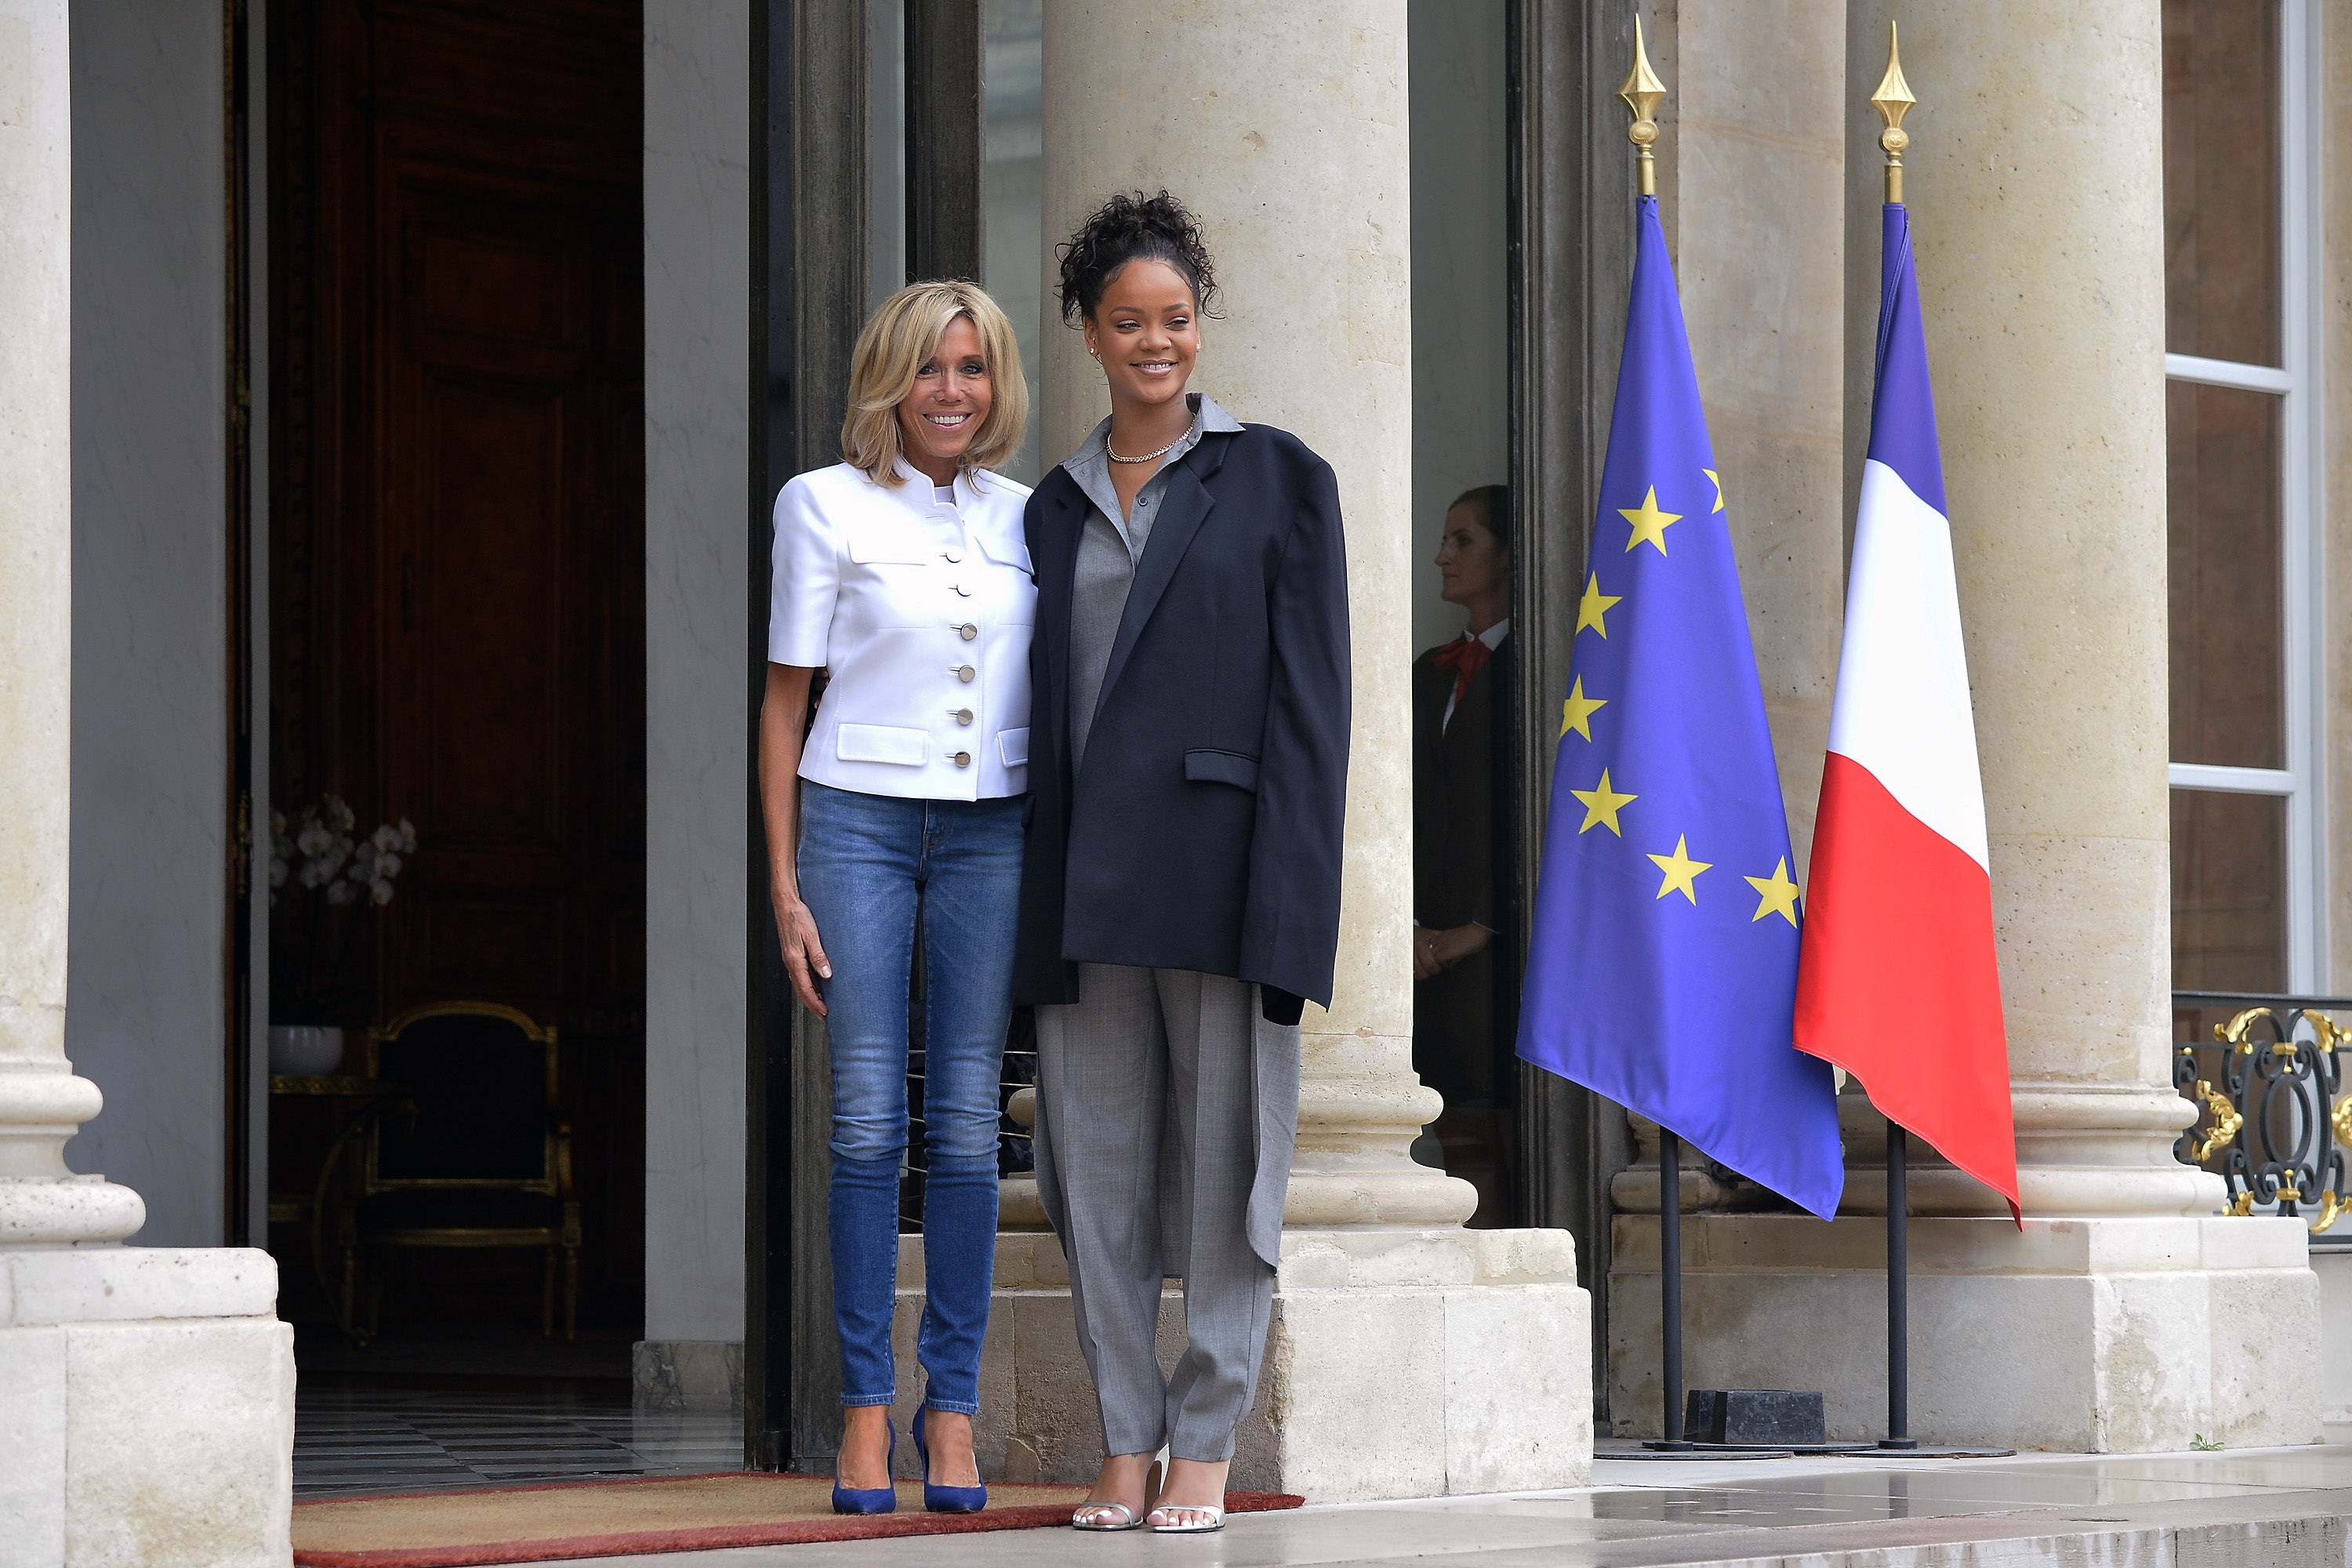 Work:Rihanna Got Four Top Political Leaders To Support Education Initiative